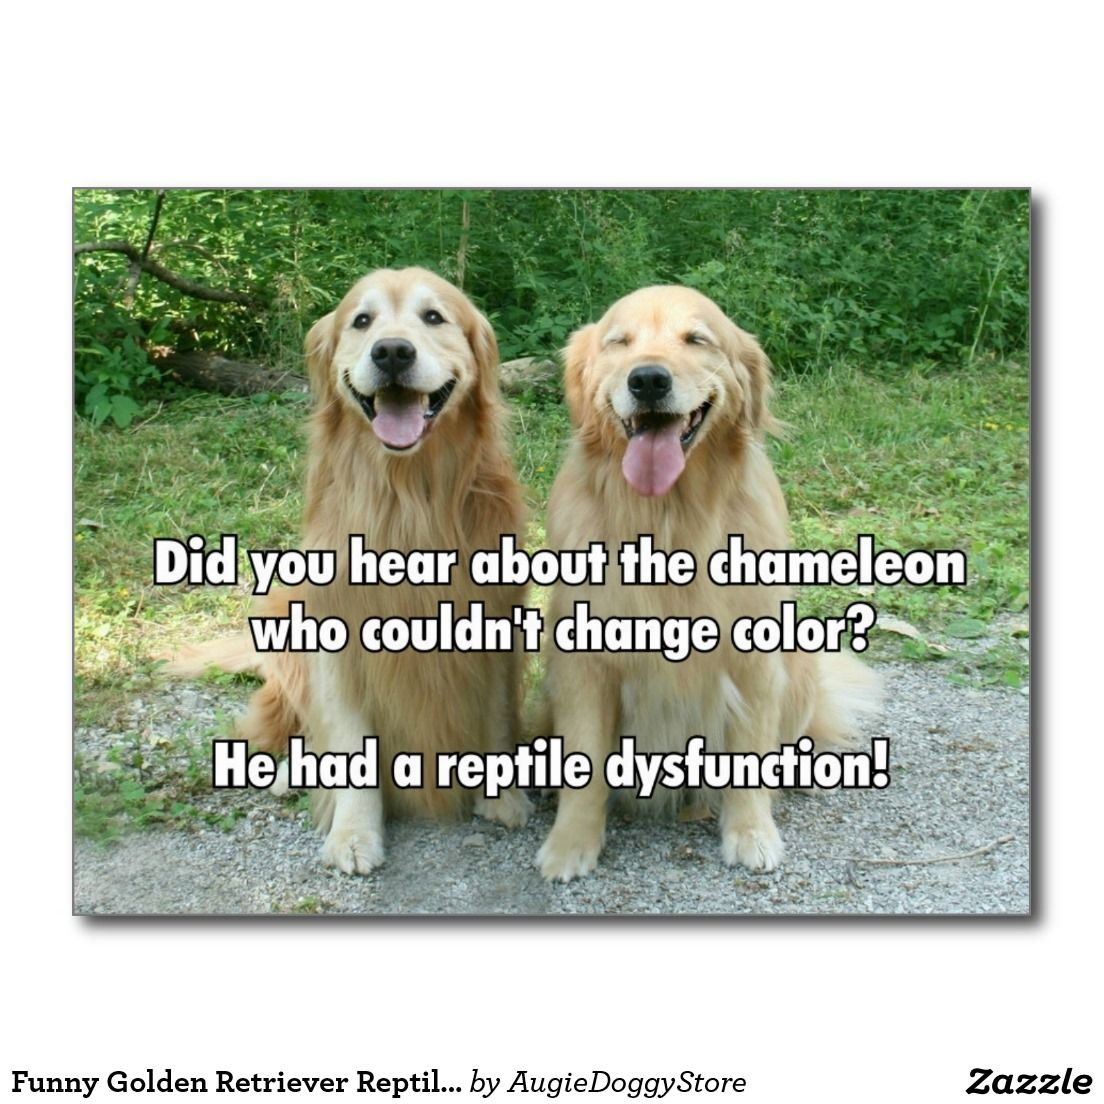 Funny Golden Retriever Reptile Dysfunction Joke Postcard Zazzle